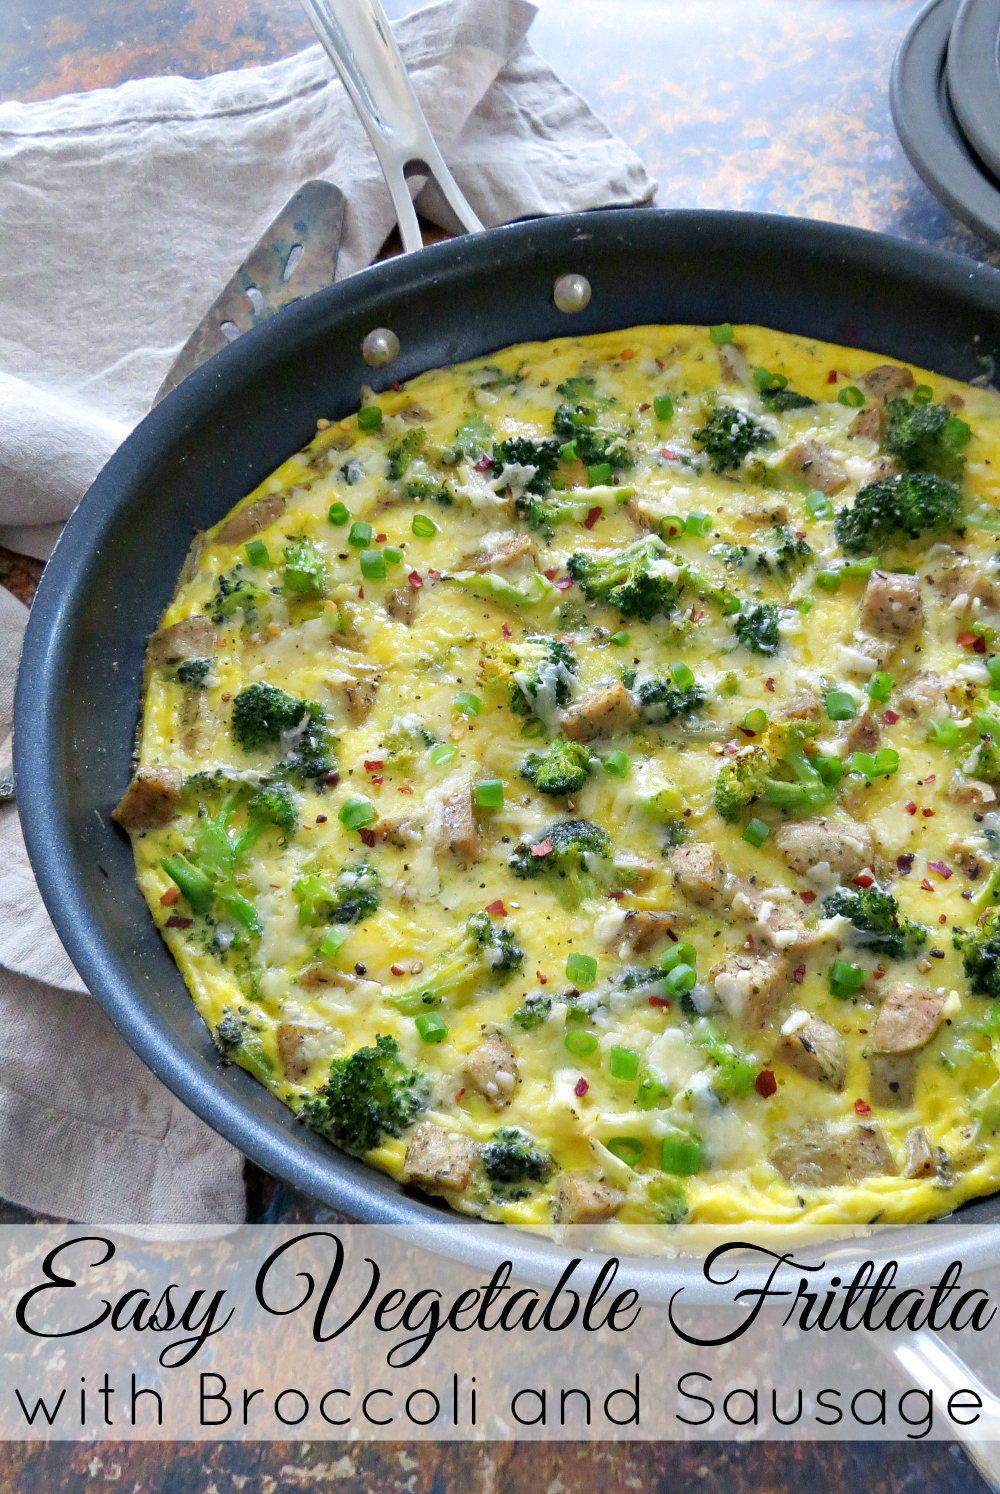 Vegetable Frittata with Broccoli and Sausage